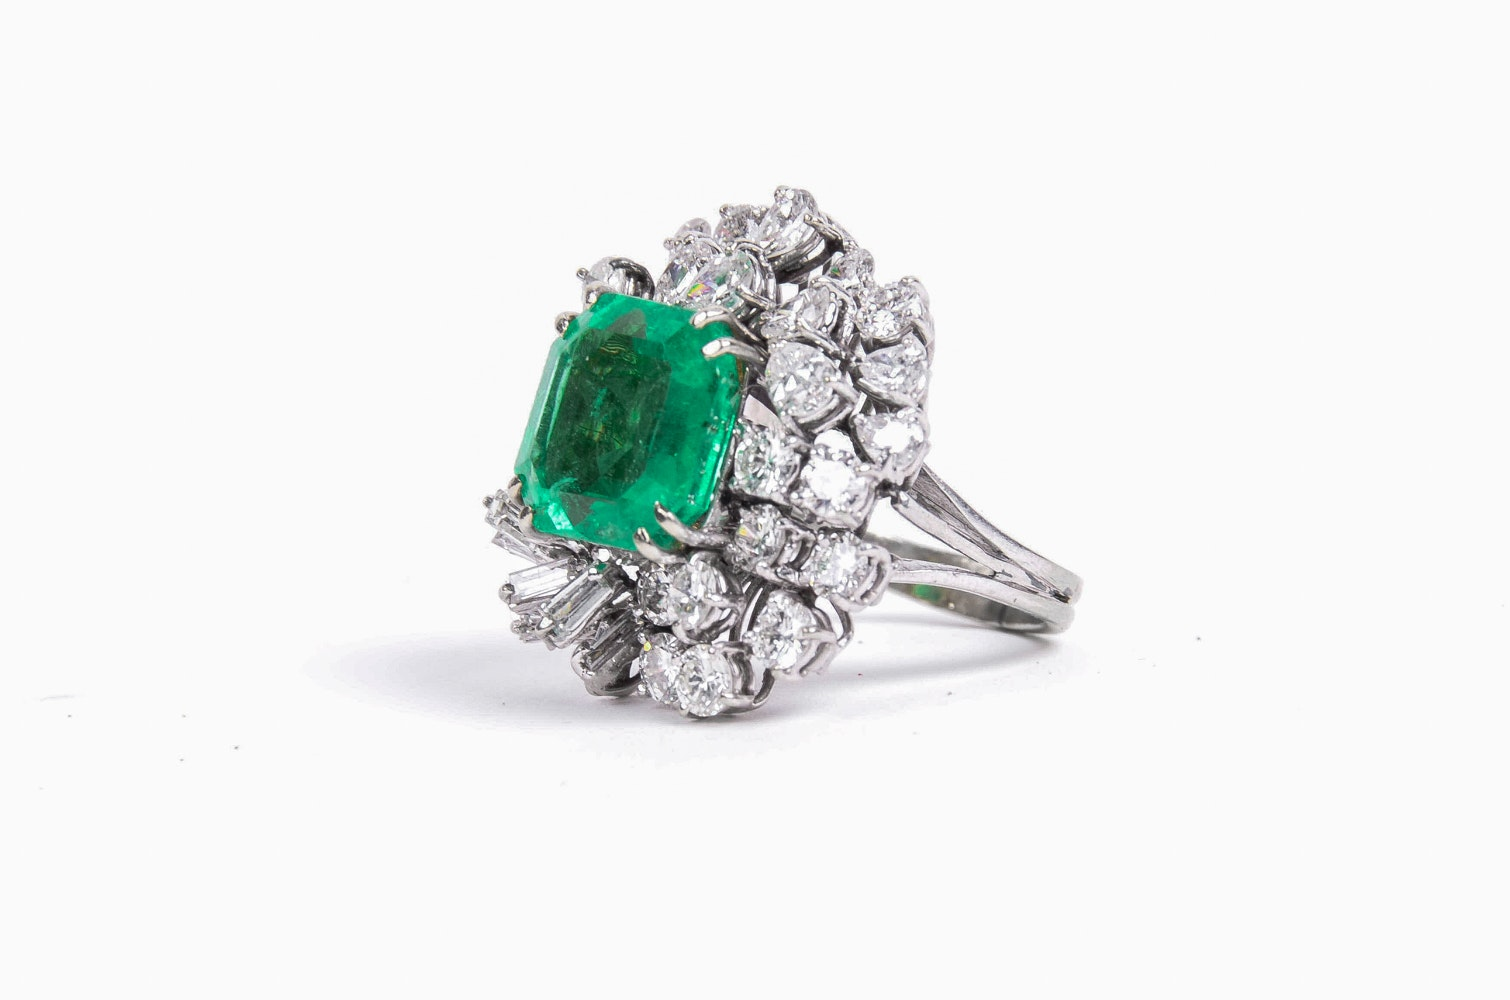 18K White Gold 6.25 CT Emerald and Diamond Ring